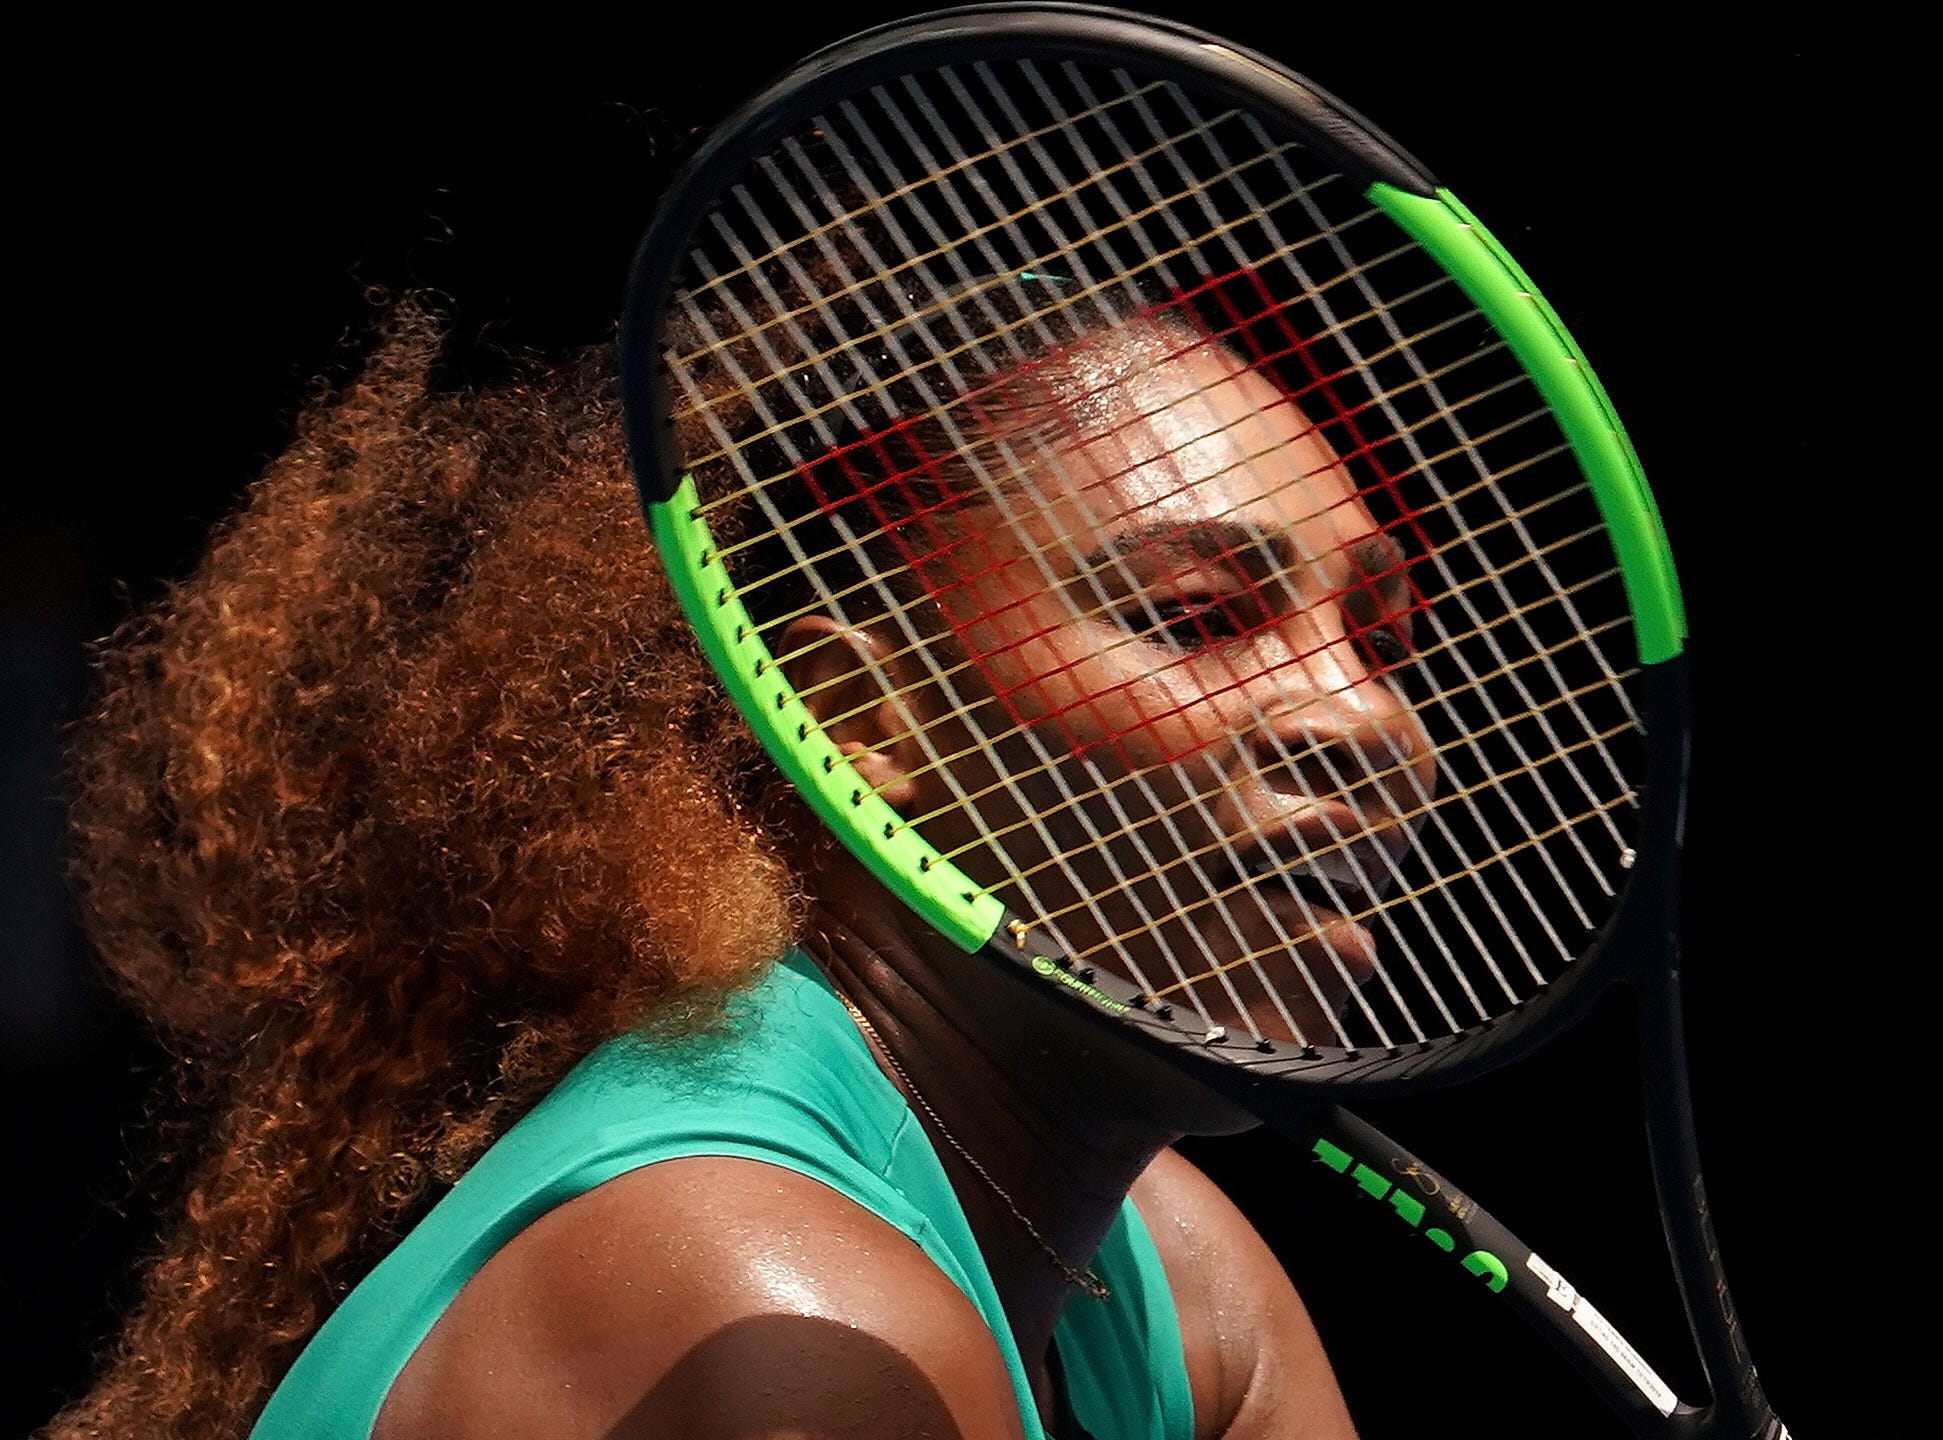 Serena Williams in action against Tatjana Maria on Day 2.